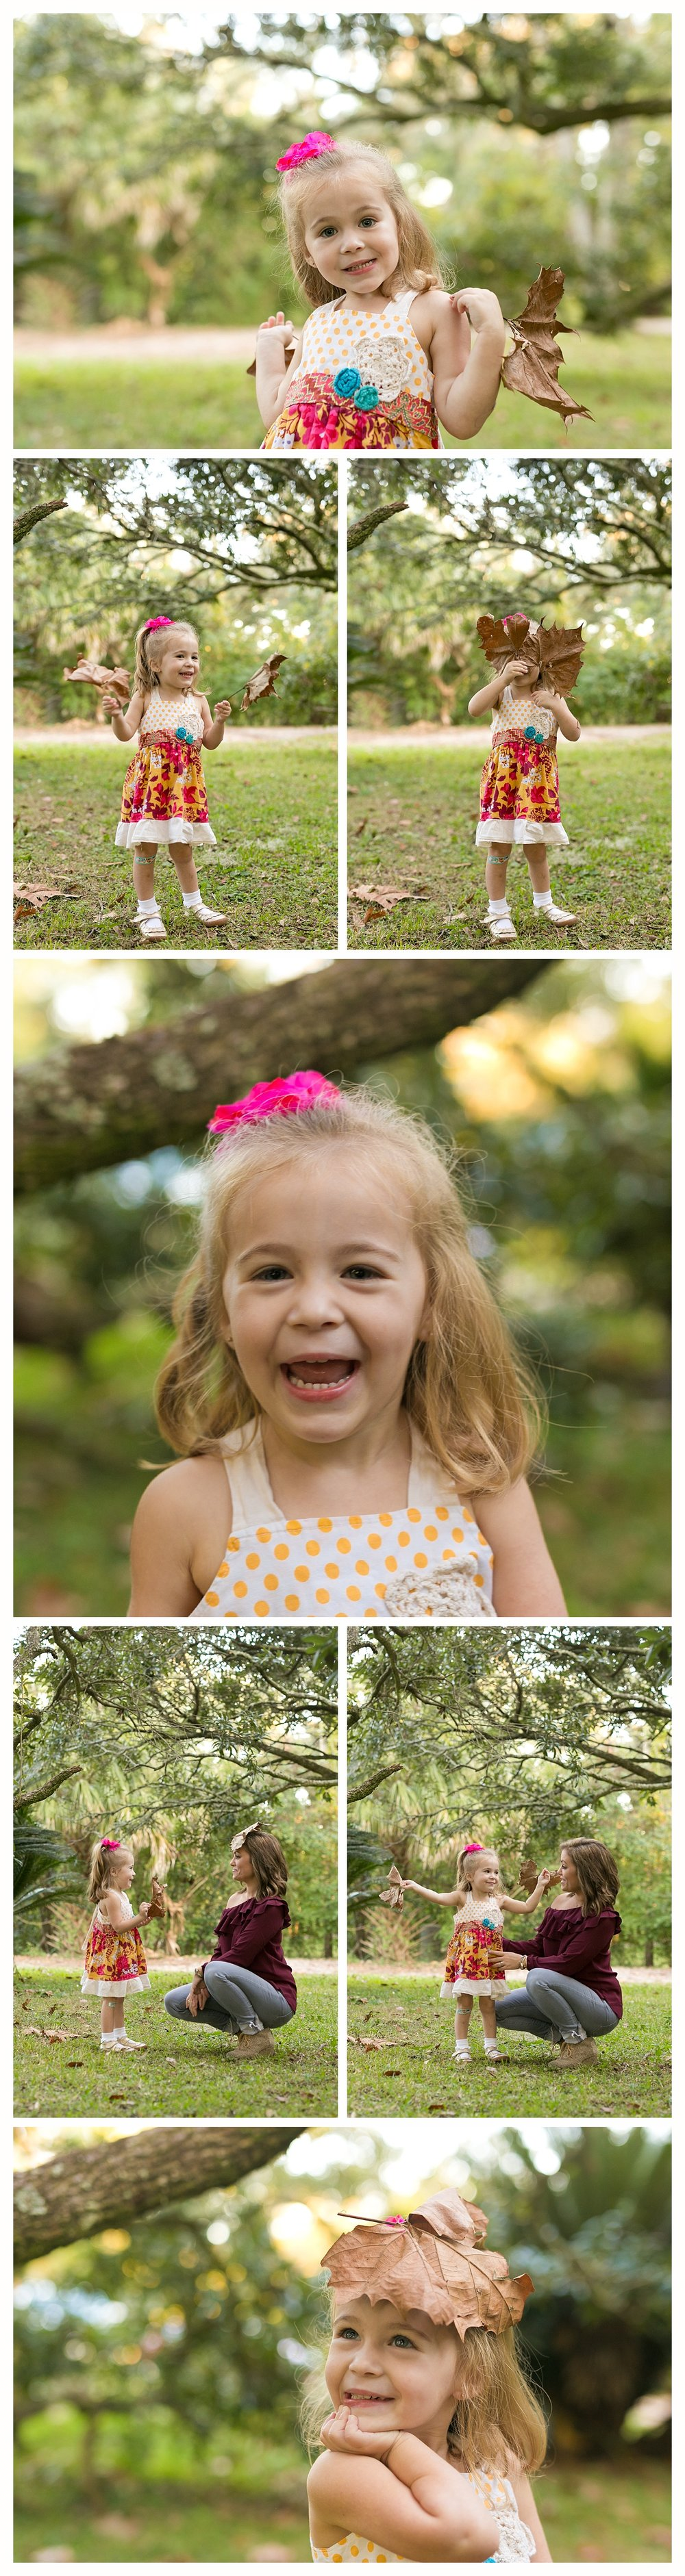 fun, candid children's photos (little girl and mom playing with leaves)